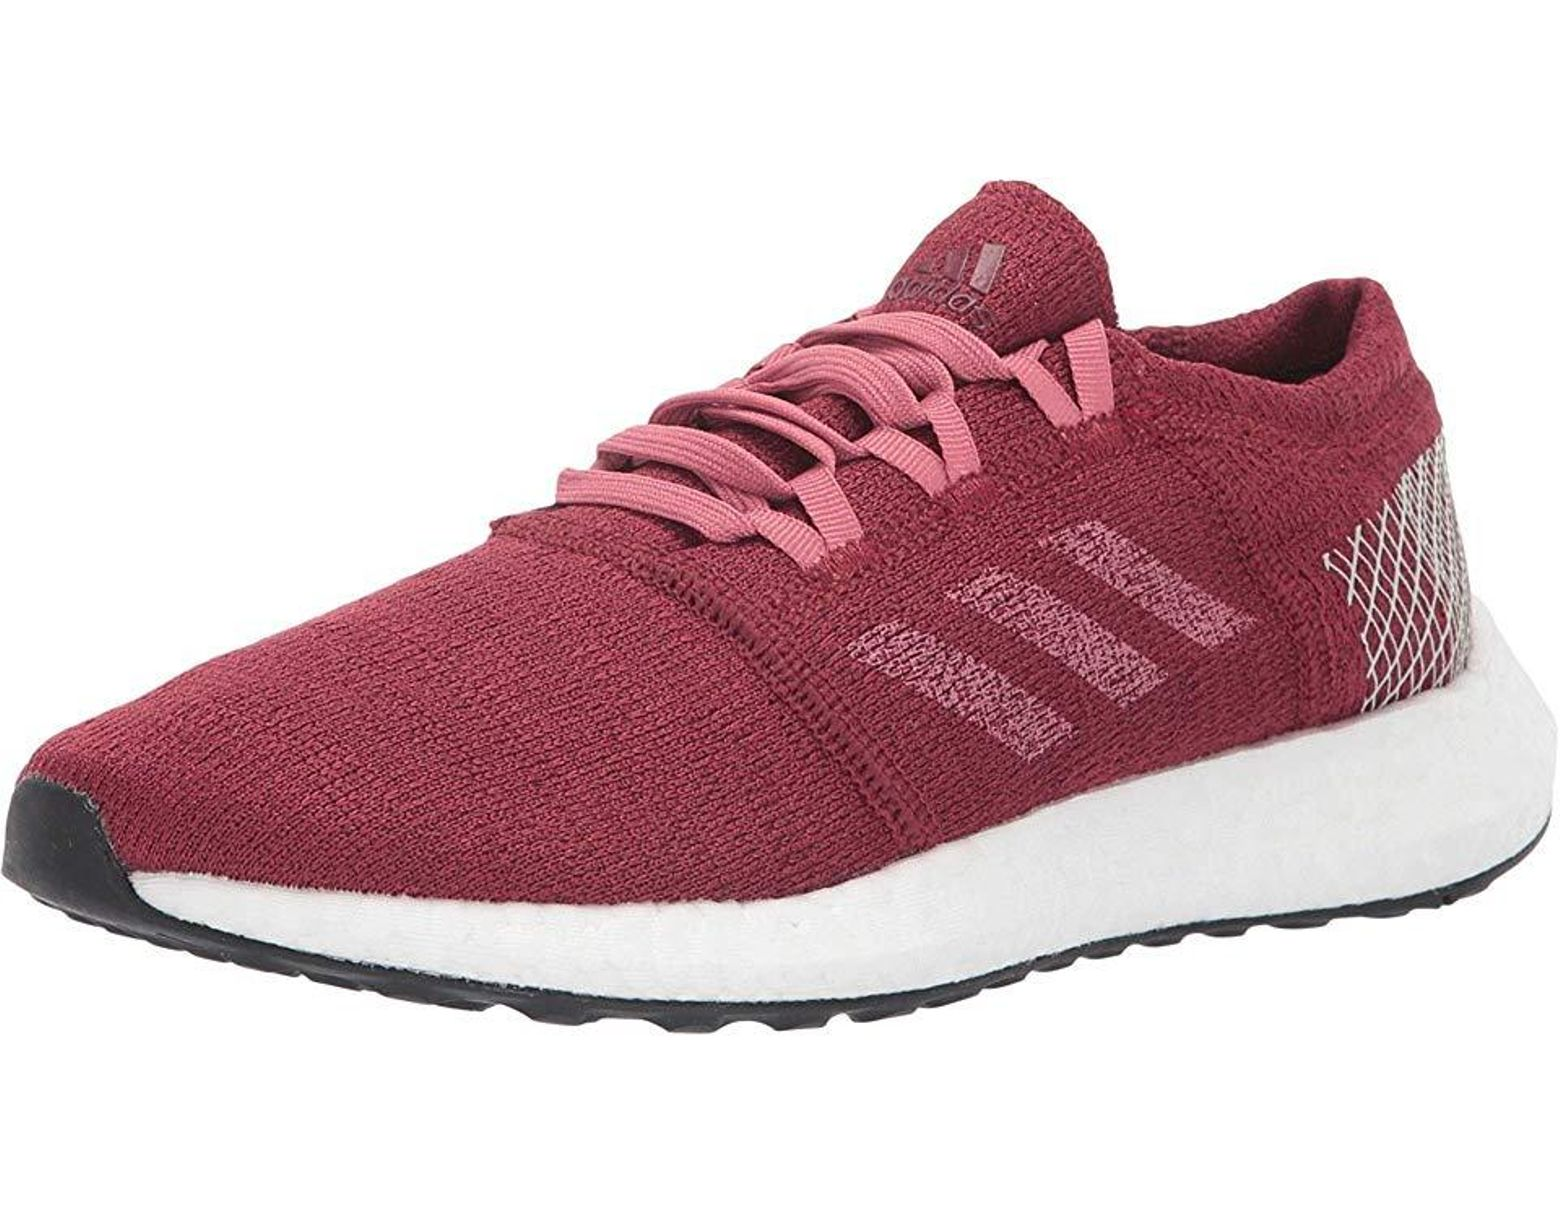 adidas Running adidas Running Alphabounce EM (Icy PinkTrace PinkGrey One) Women's Running Shoes from 6pm | ShapeShop